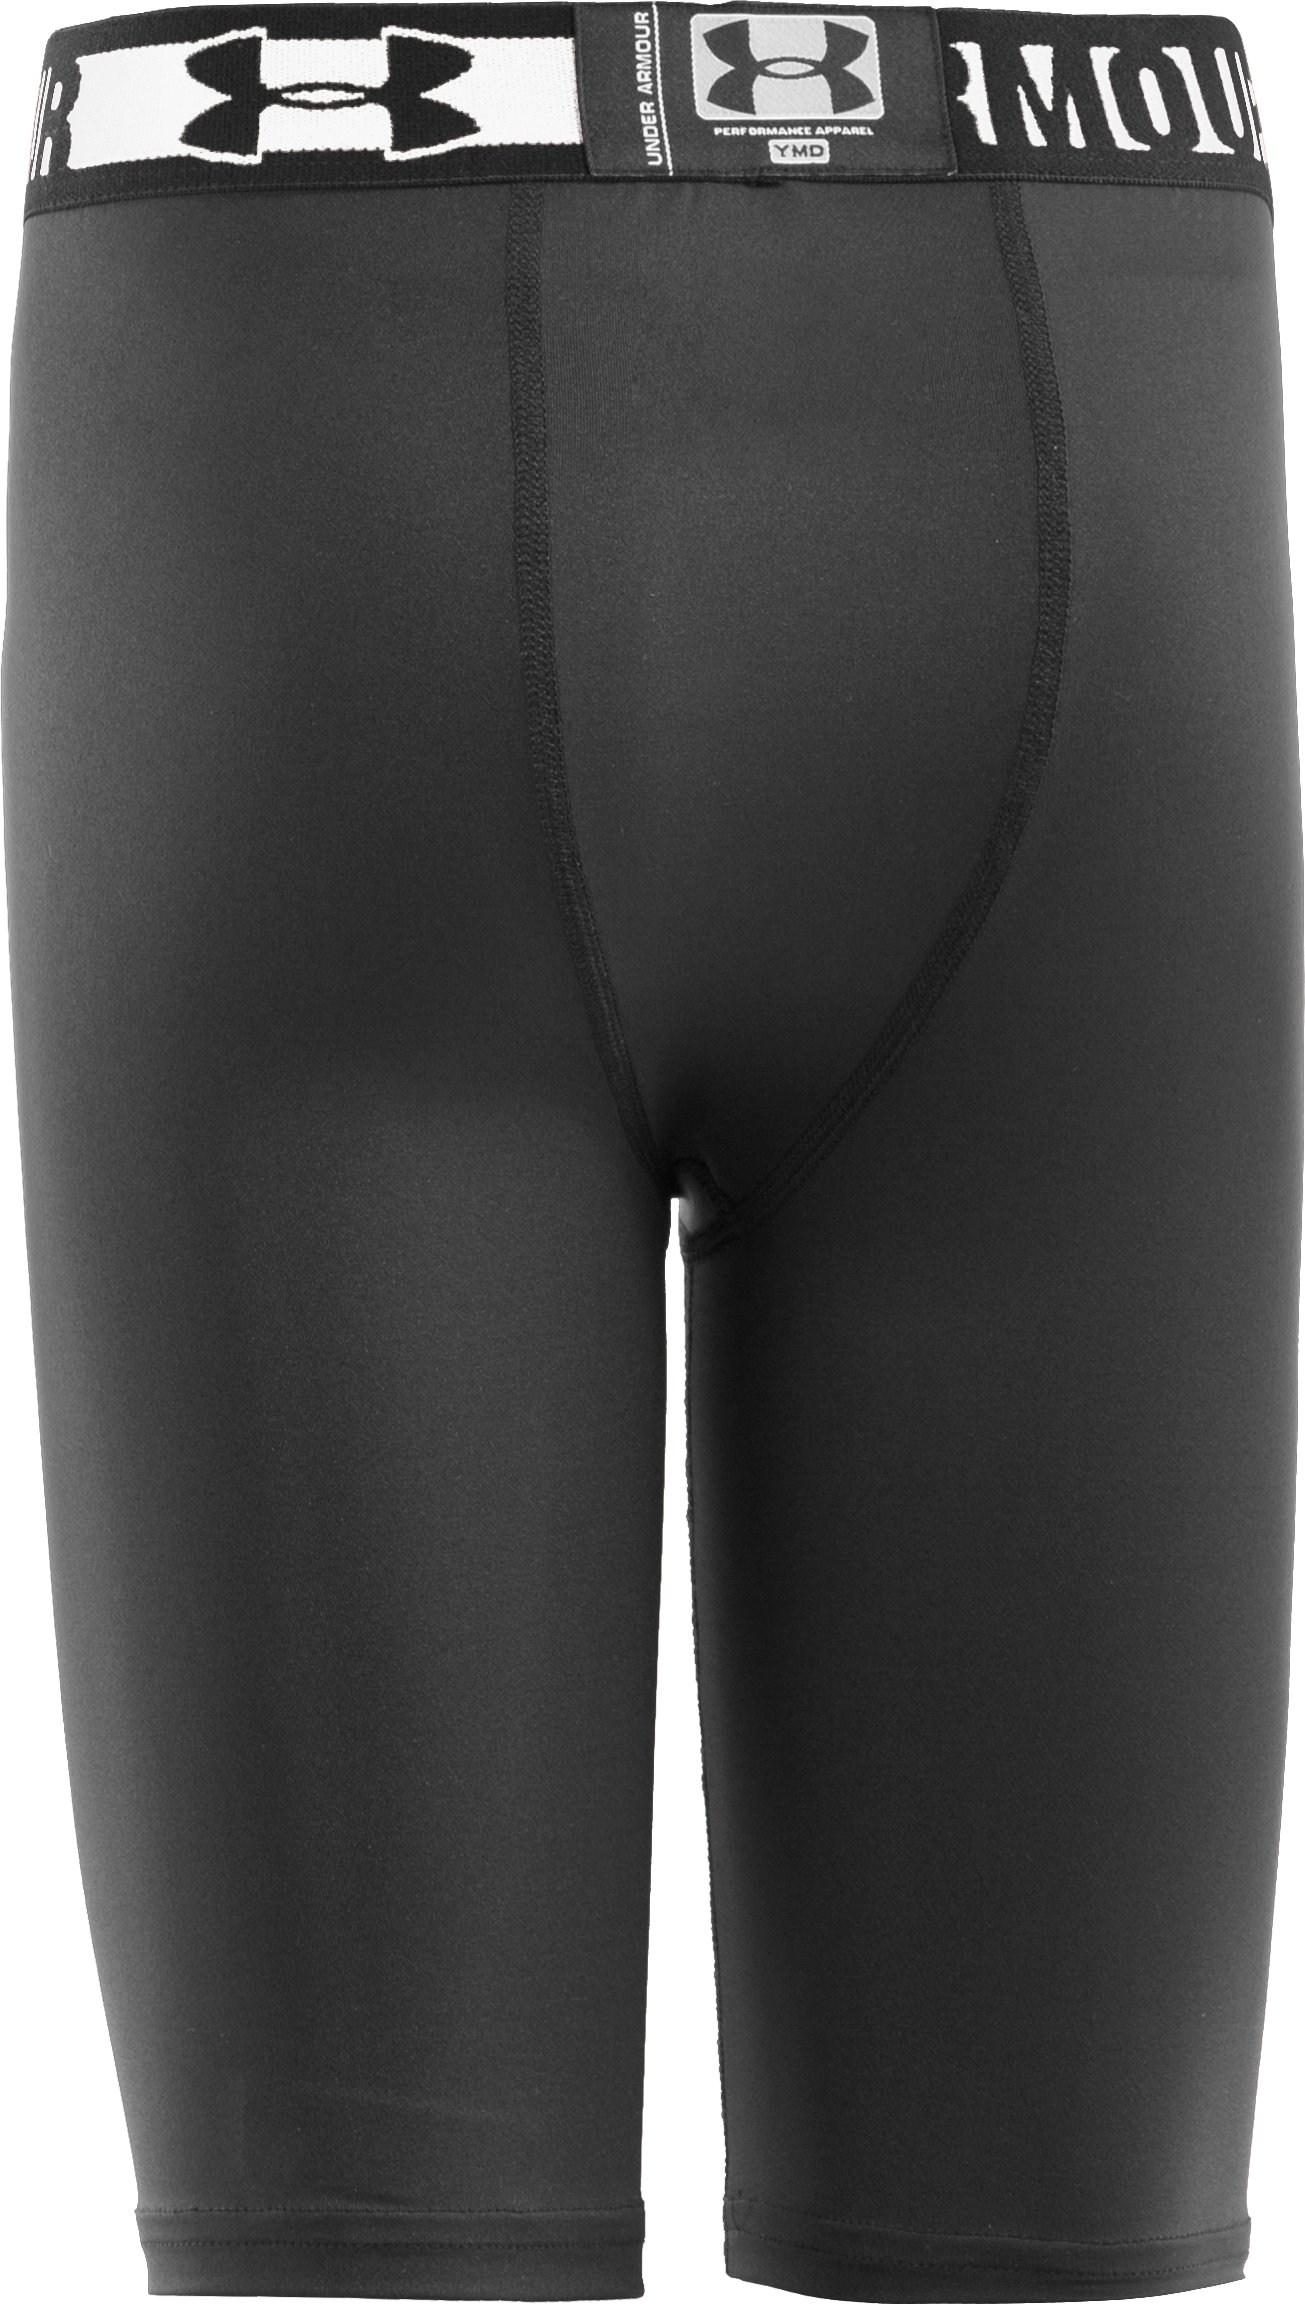 "Boys' HeatGear® Sonic 7"" Fitted Shorts, Black"